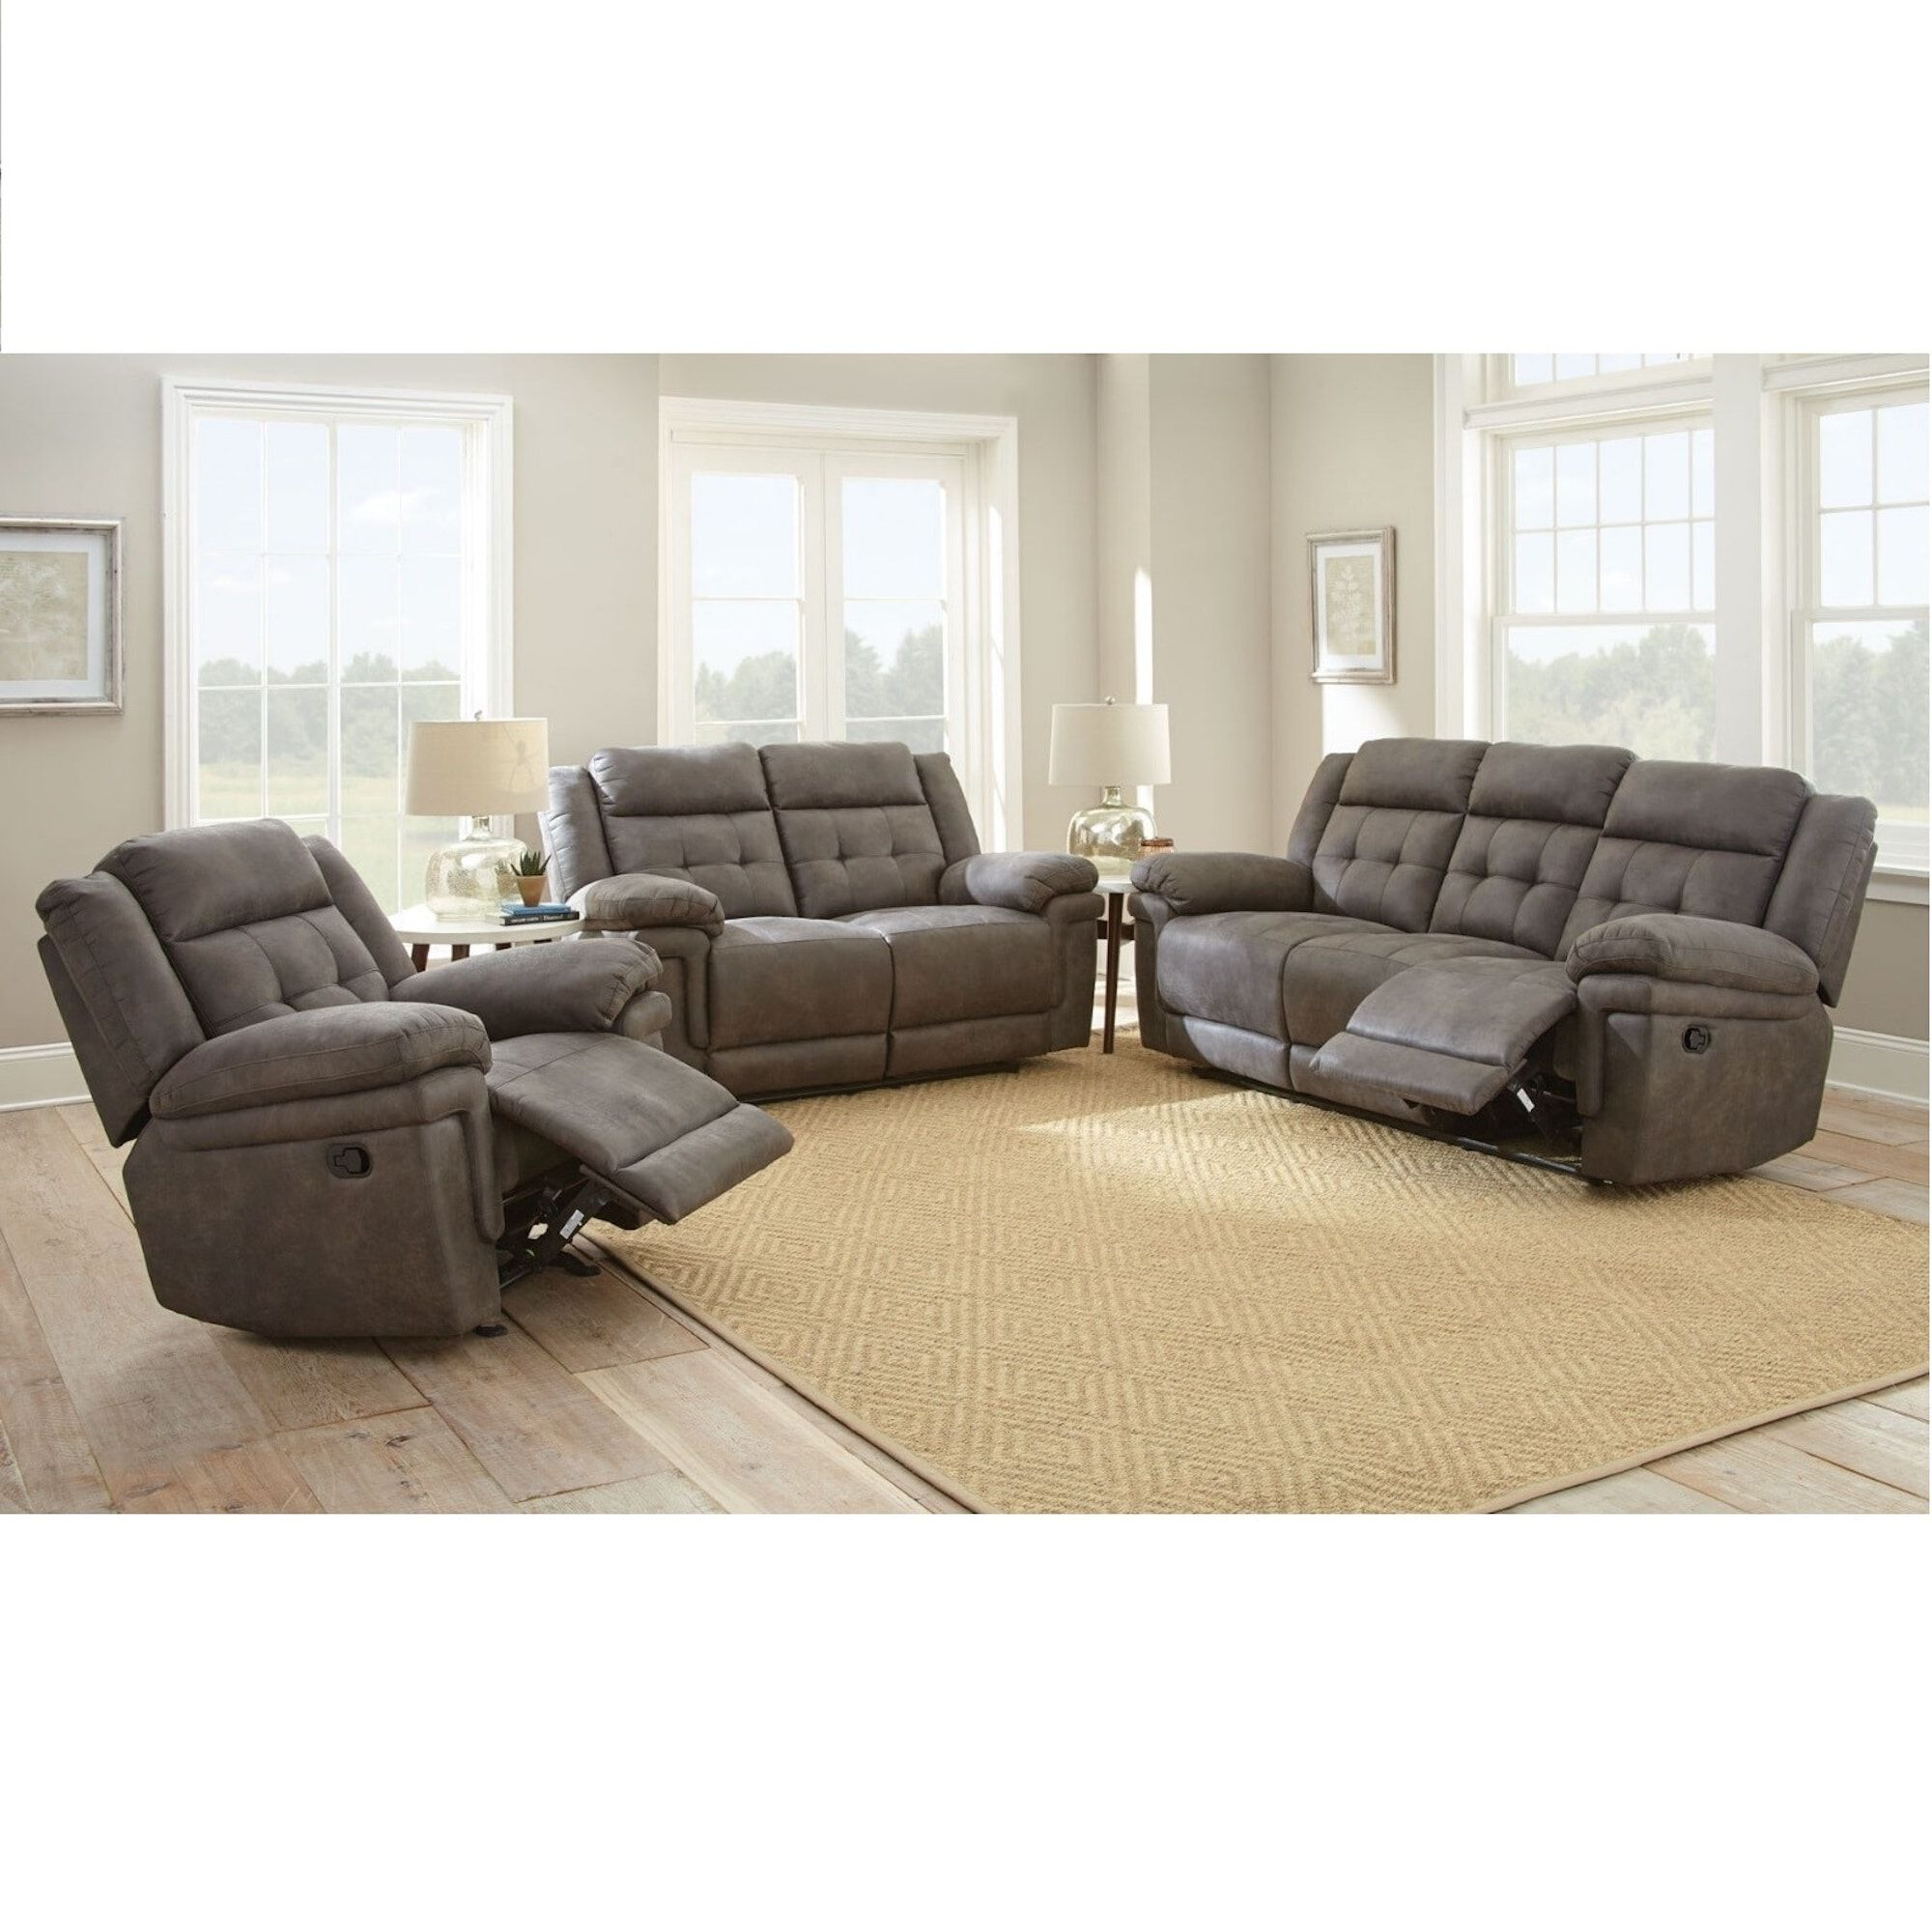 Awesome 3 Piece Silverado Living Room Collection